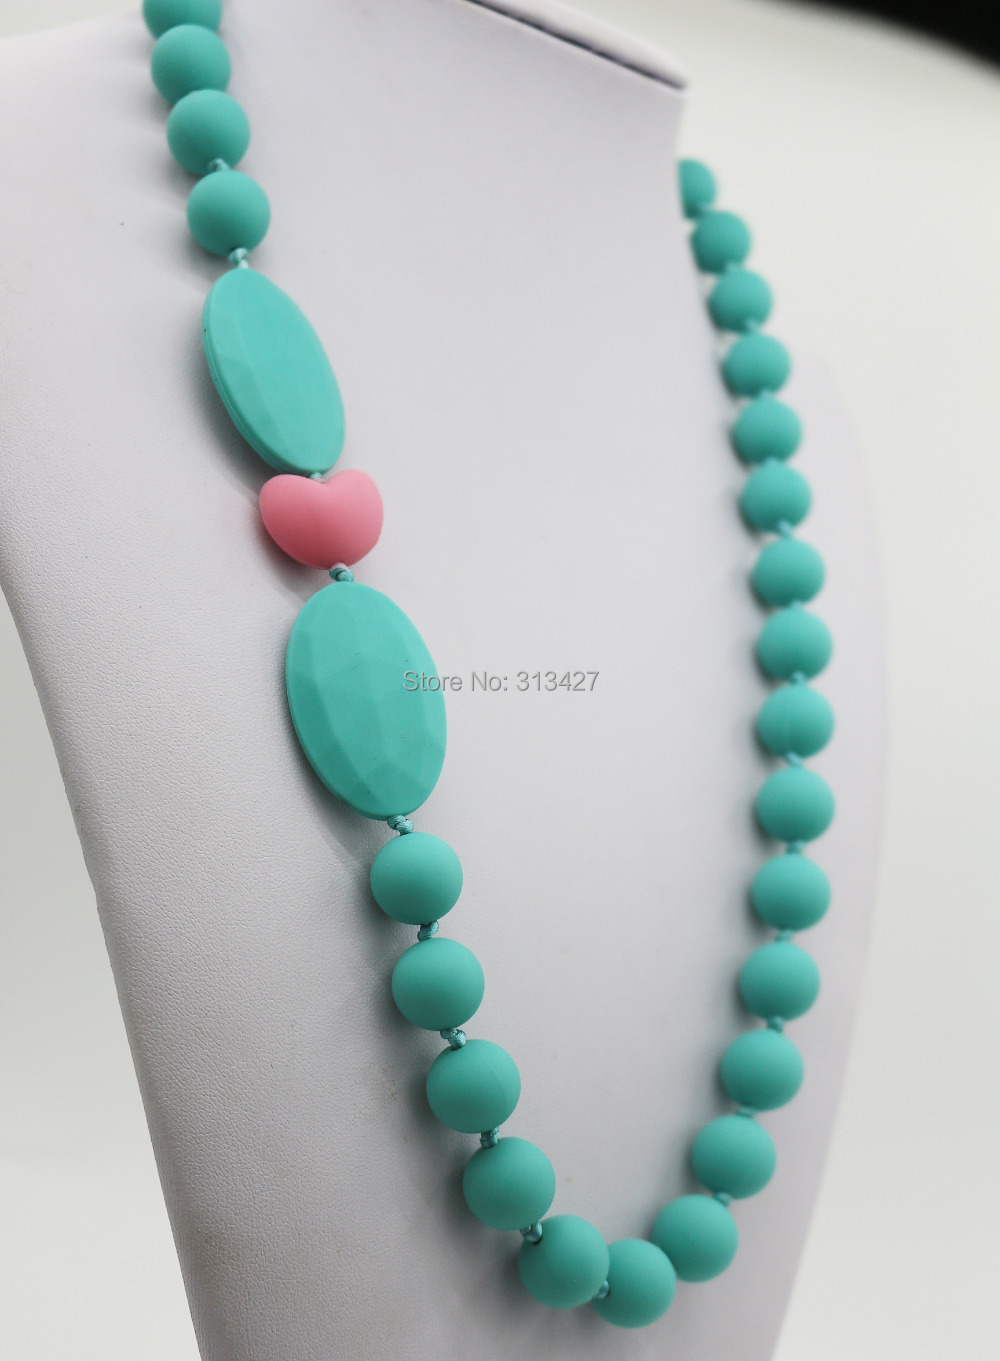 product 2015 best baby NEW STYLE Chewable Teething Necklace - Silicone safe for baby Beads - Breakaway Clasp - Nursing Necklace